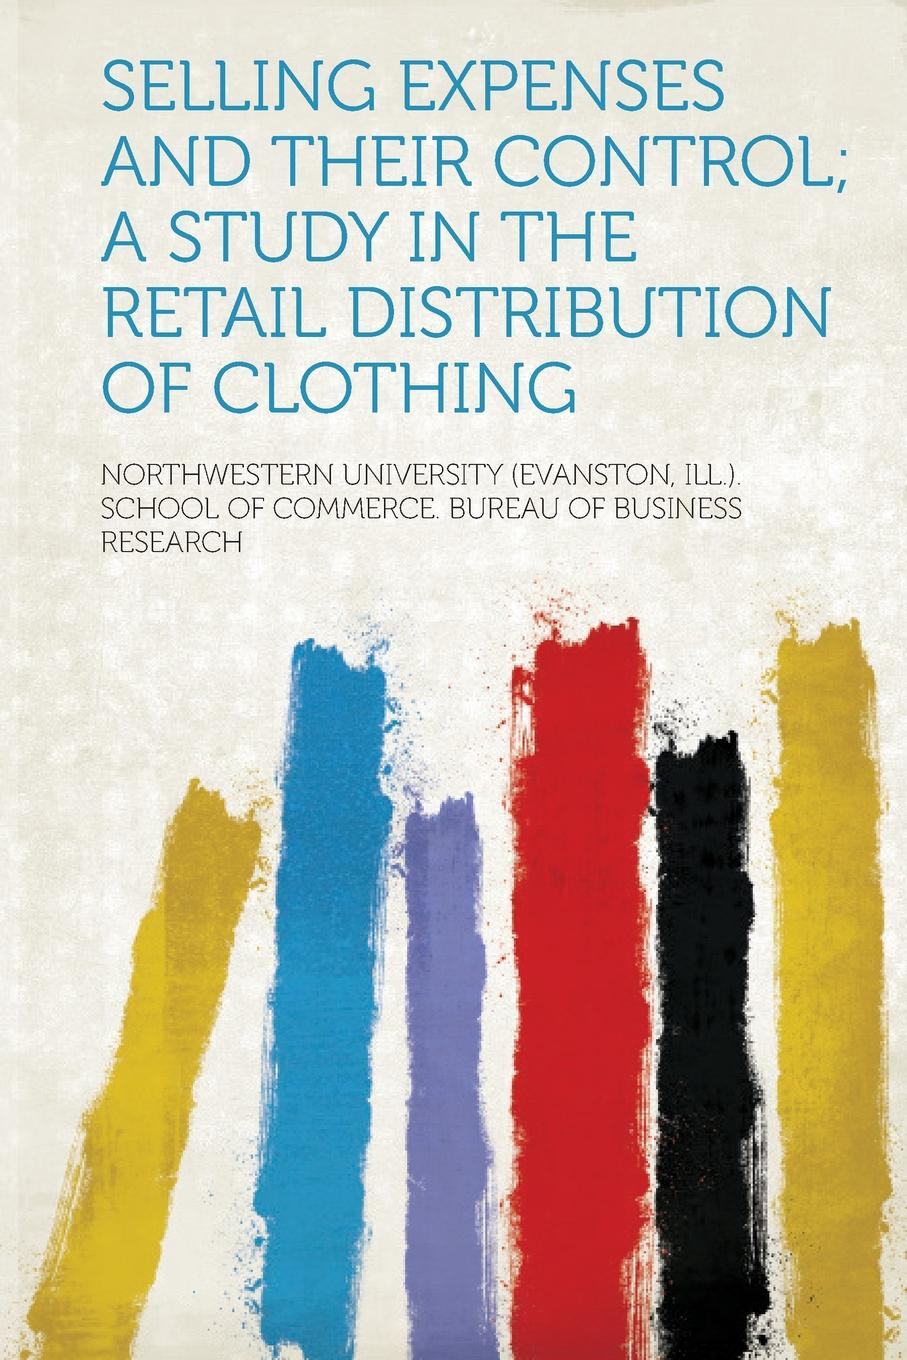 Northwestern University (Evans Research Selling Expenses and Their Control; A Study in the Retail Distribution of Clothing the clothing of books